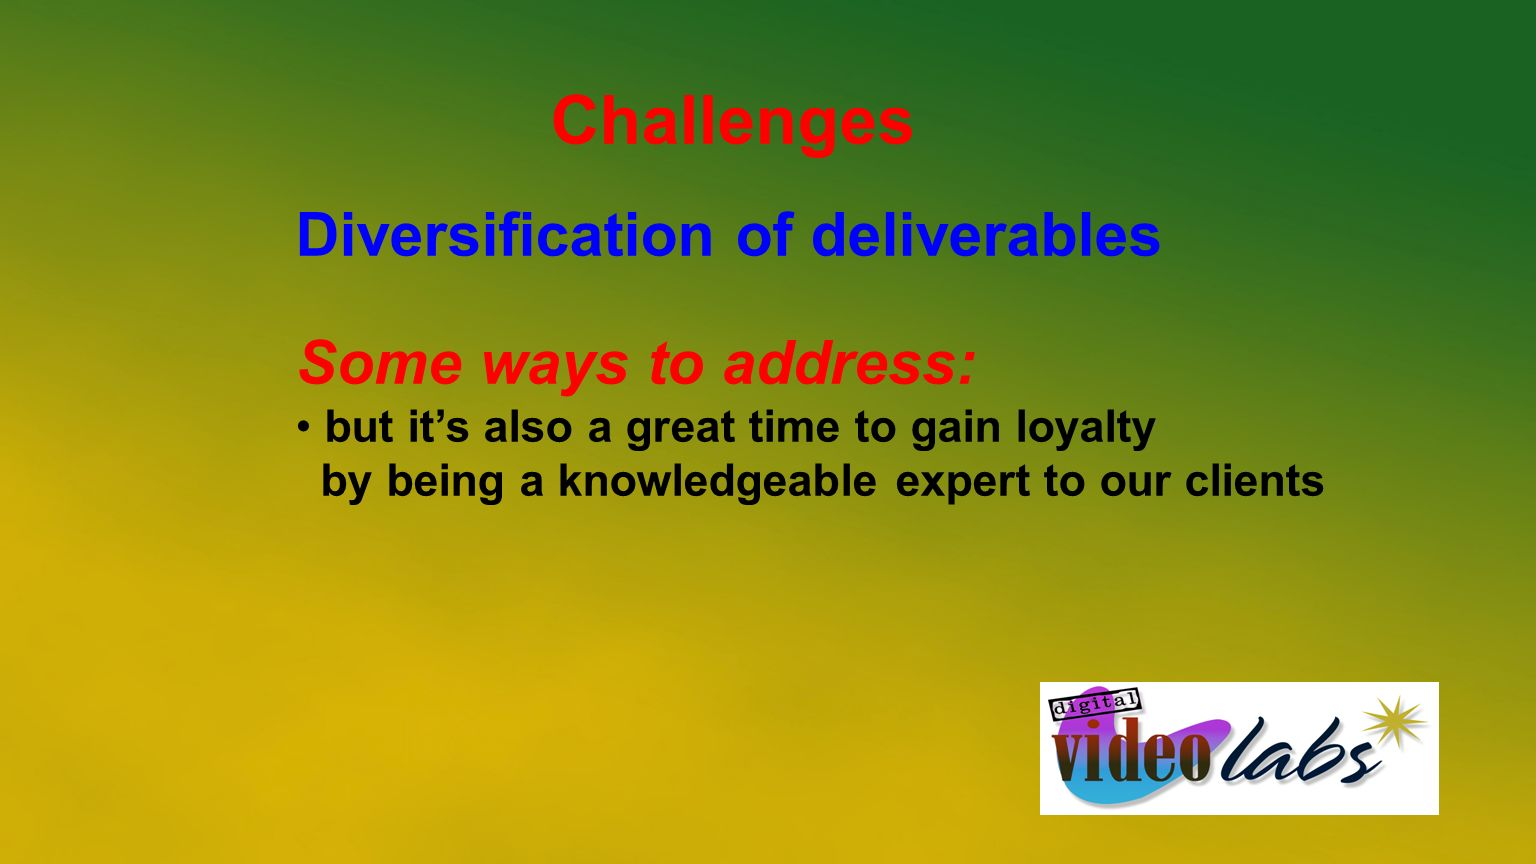 Challenges Diversification of deliverables Some ways to address: but its also a great time to gain loyalty by being a knowledgeable expert to our clie